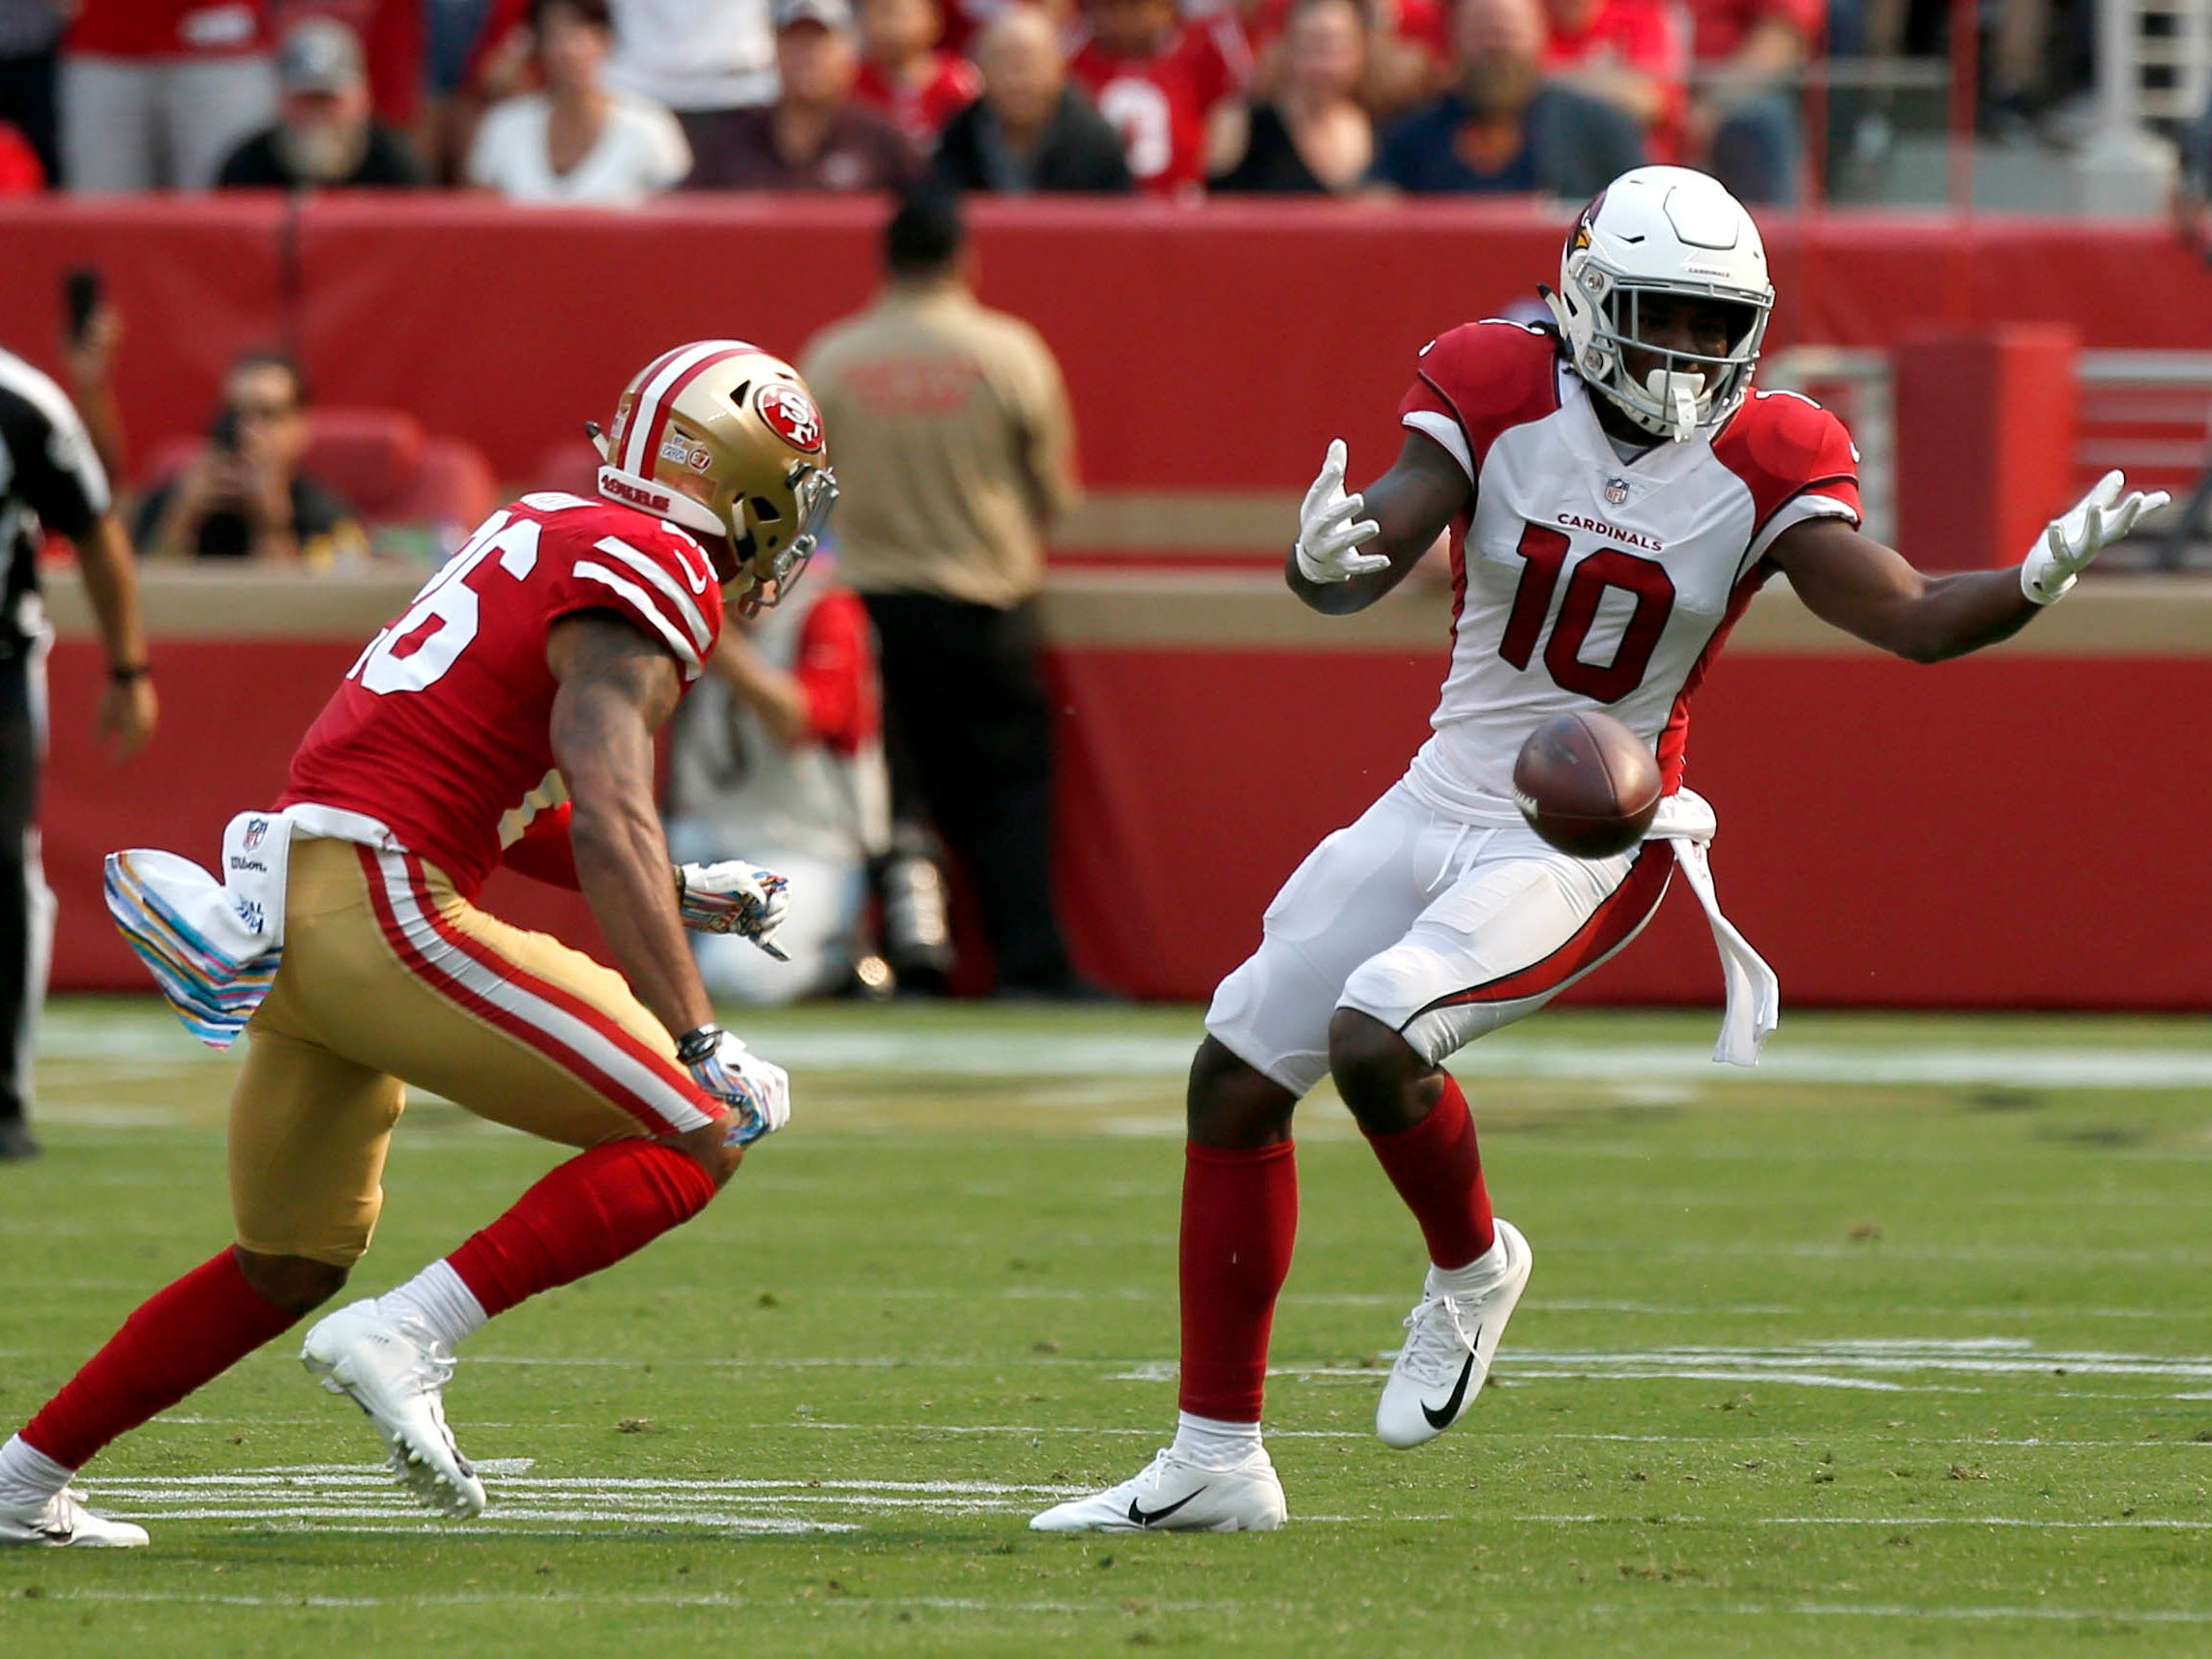 Oct 7, 2018; Santa Clara, CA, USA; Arizona Cardinals wide receiver Chad Williams (10) is unable to make a catch against the San Francisco 49ers in the second quarter at Levi's Stadium.